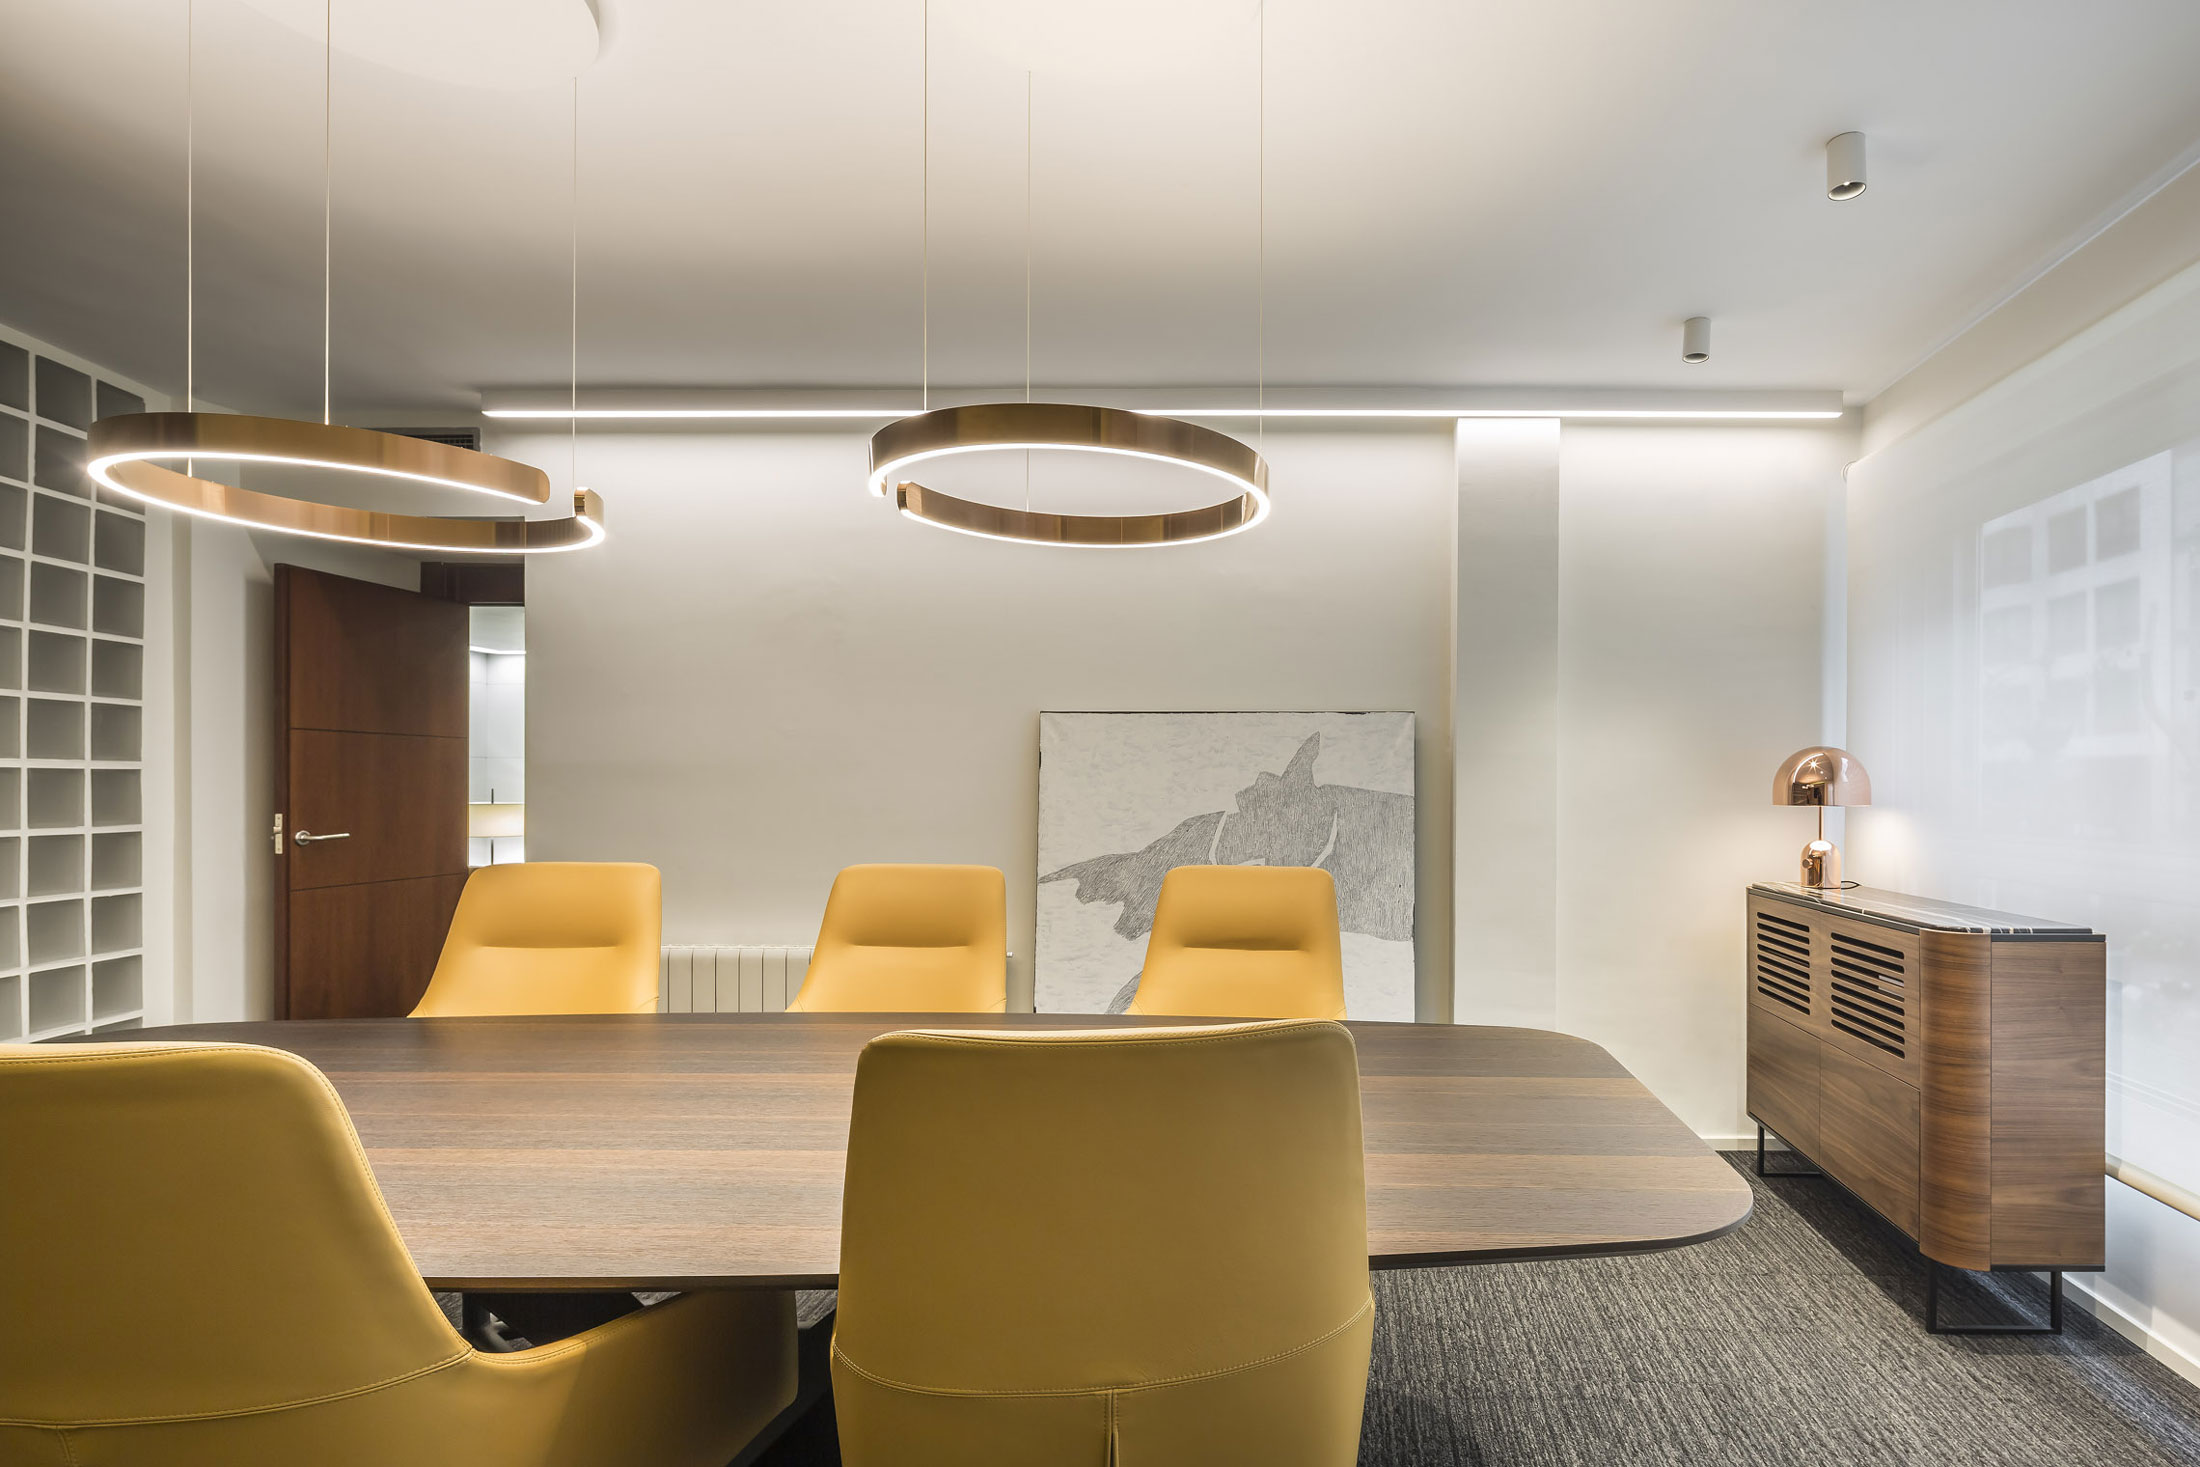 interior design in law firm by xavier lledo & momocca